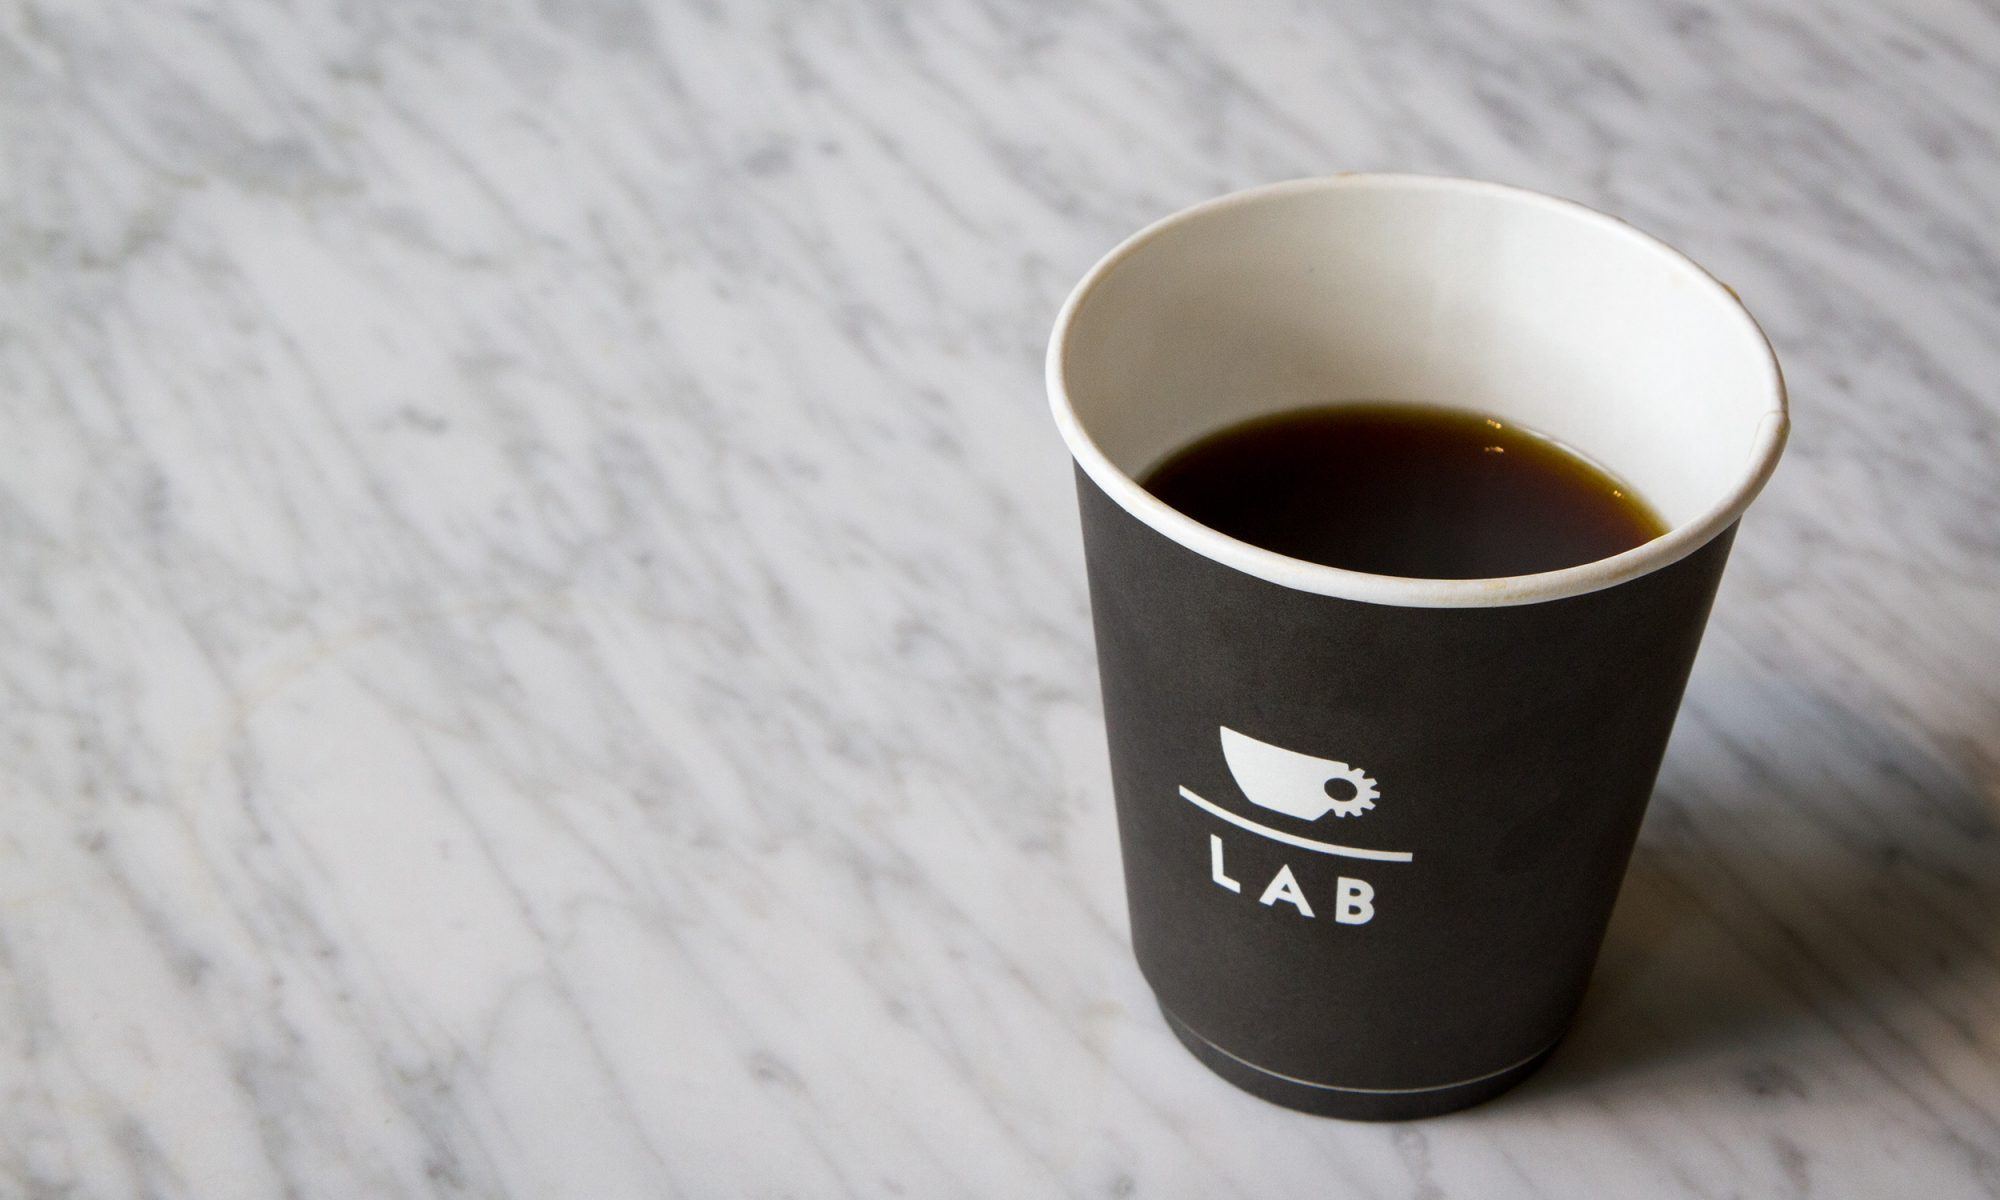 EC: I Tried the Most Expensive Cup of Coffee in America and Wasn't Impressed